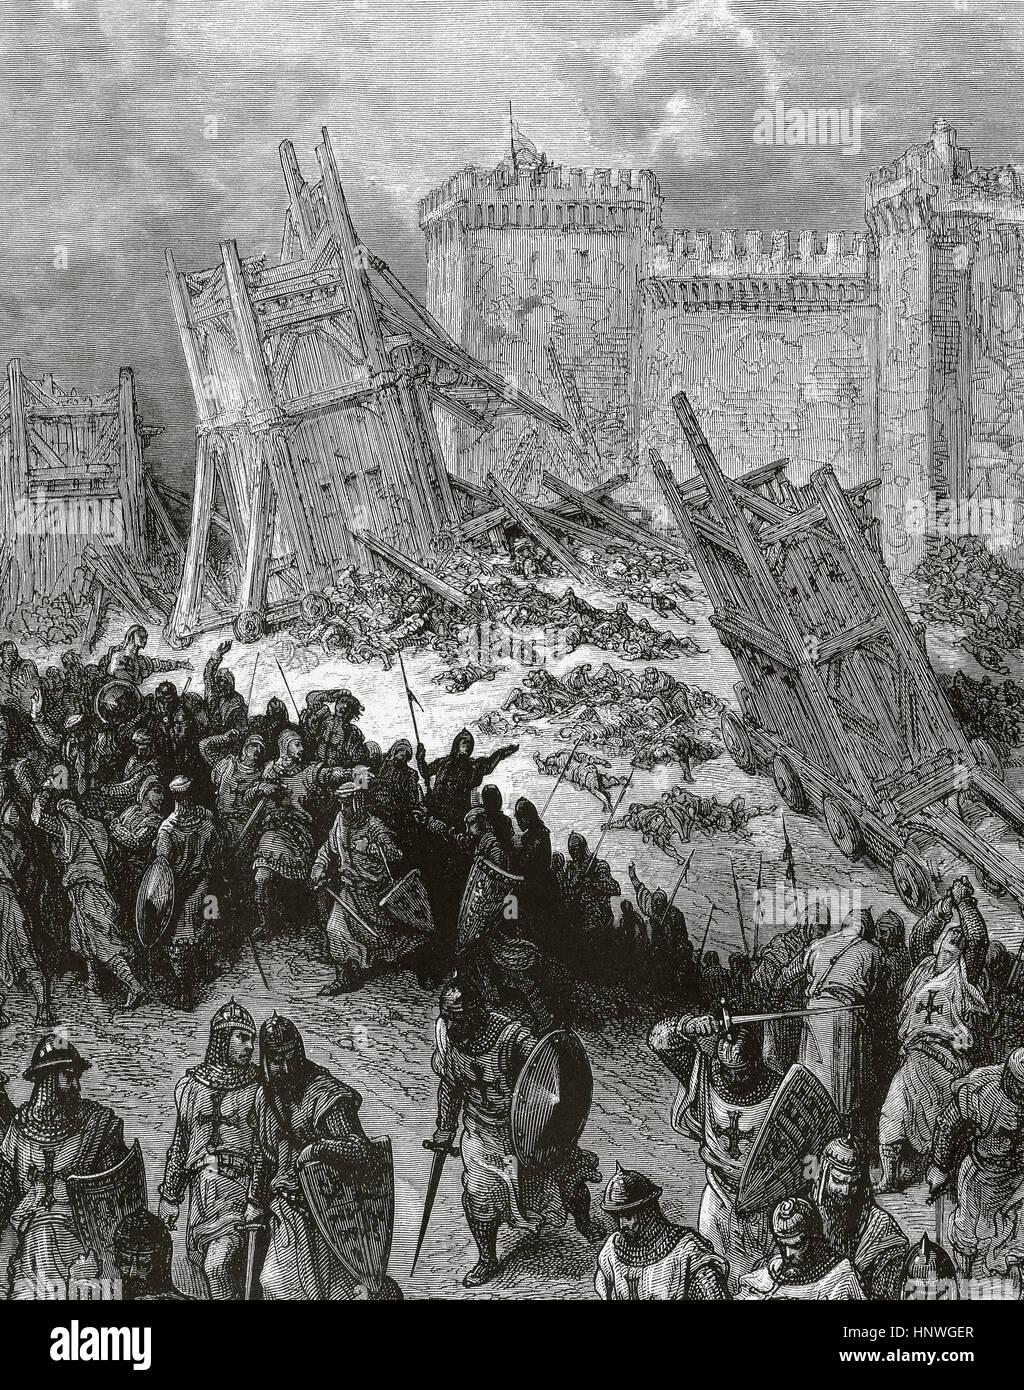 First Crusade (1096-1099). The siege of Antioch. It took place from 21  october, 1097 to 2 June, 1098. Engraving by Gustave Dore (1832-1883).